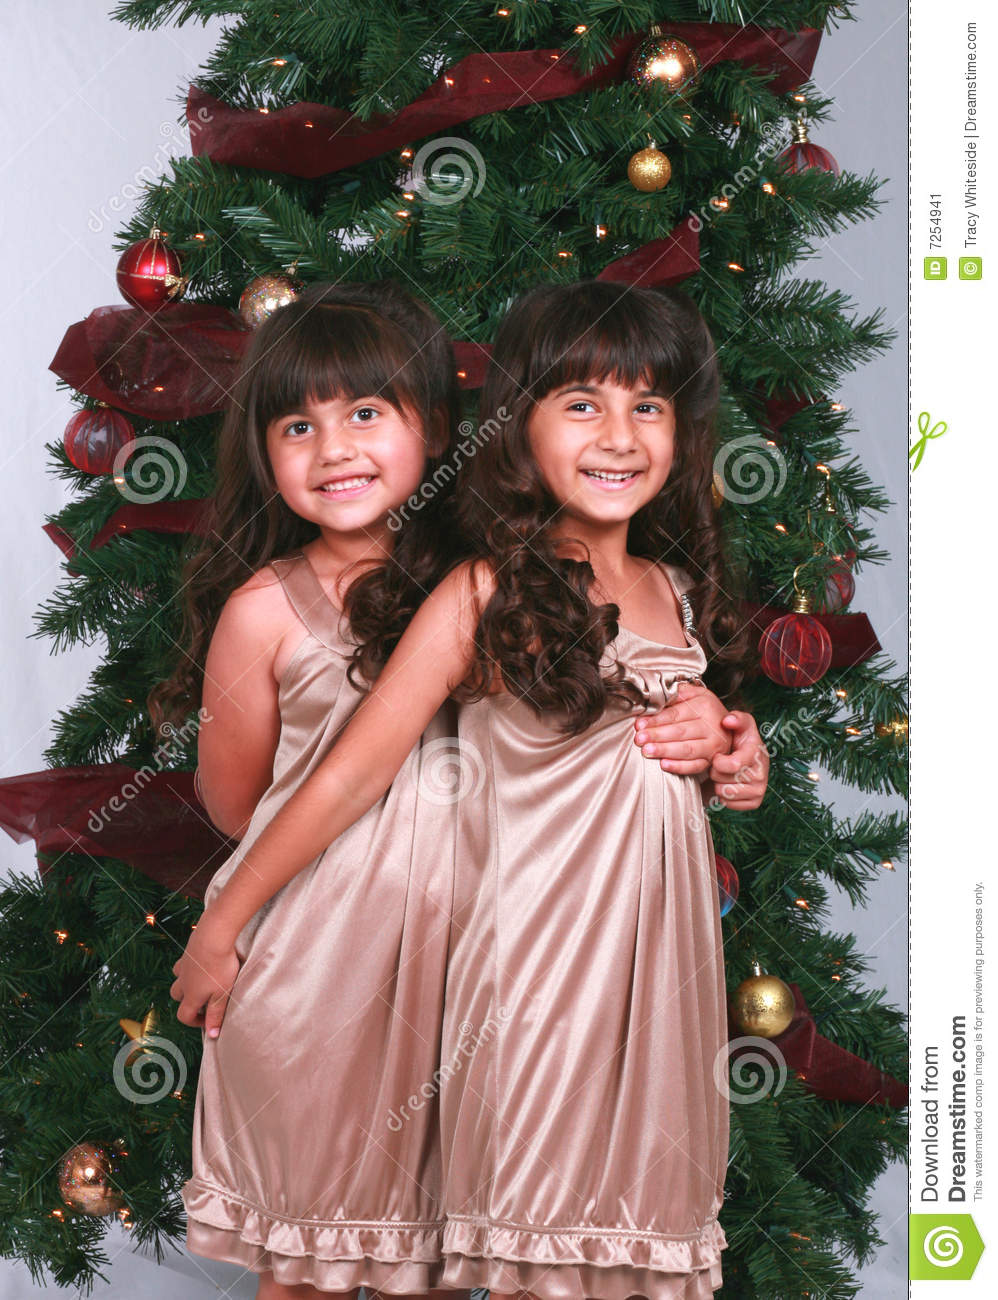 Girls by Christmas Tree